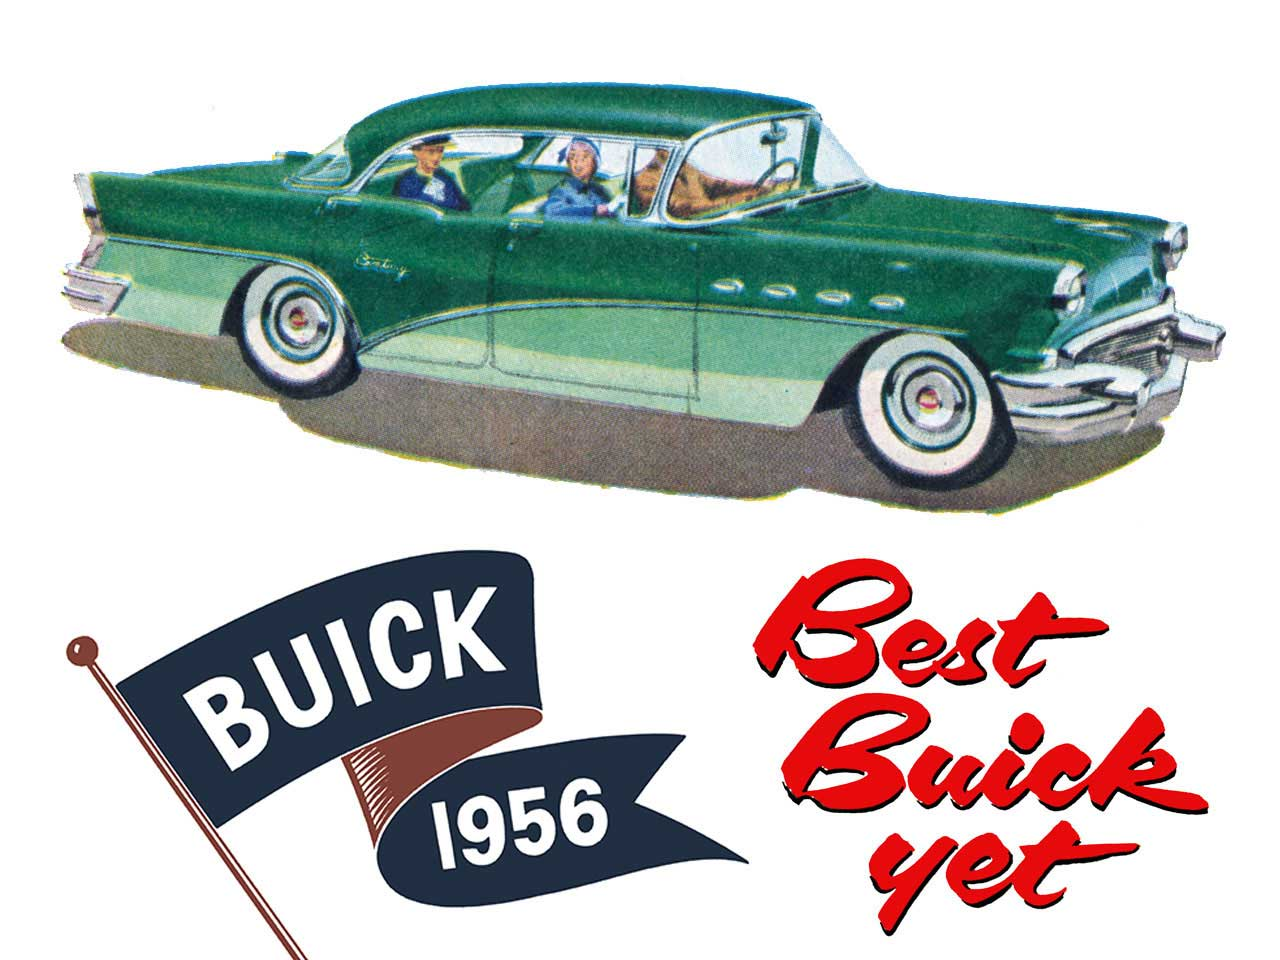 1956 Buick - Best Buick yet